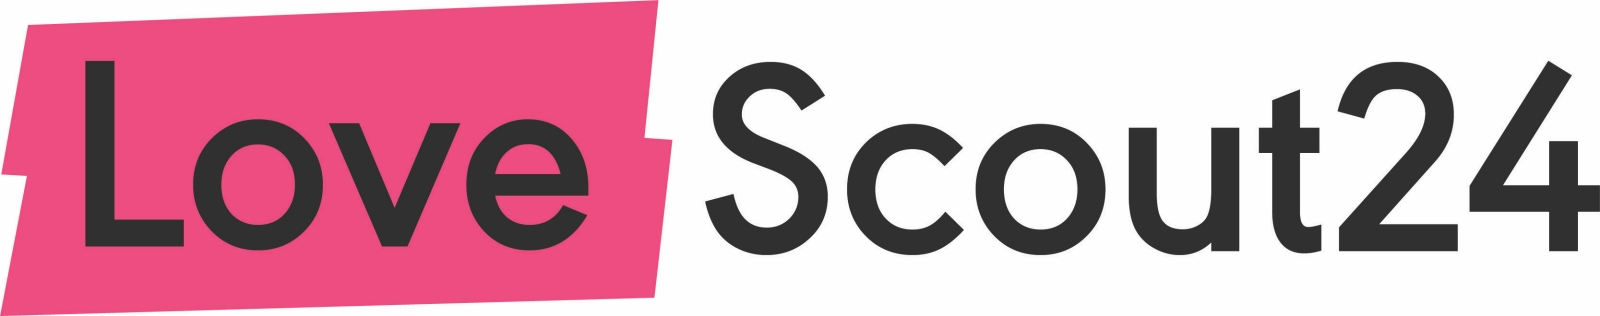 Www.Lovescout24.De